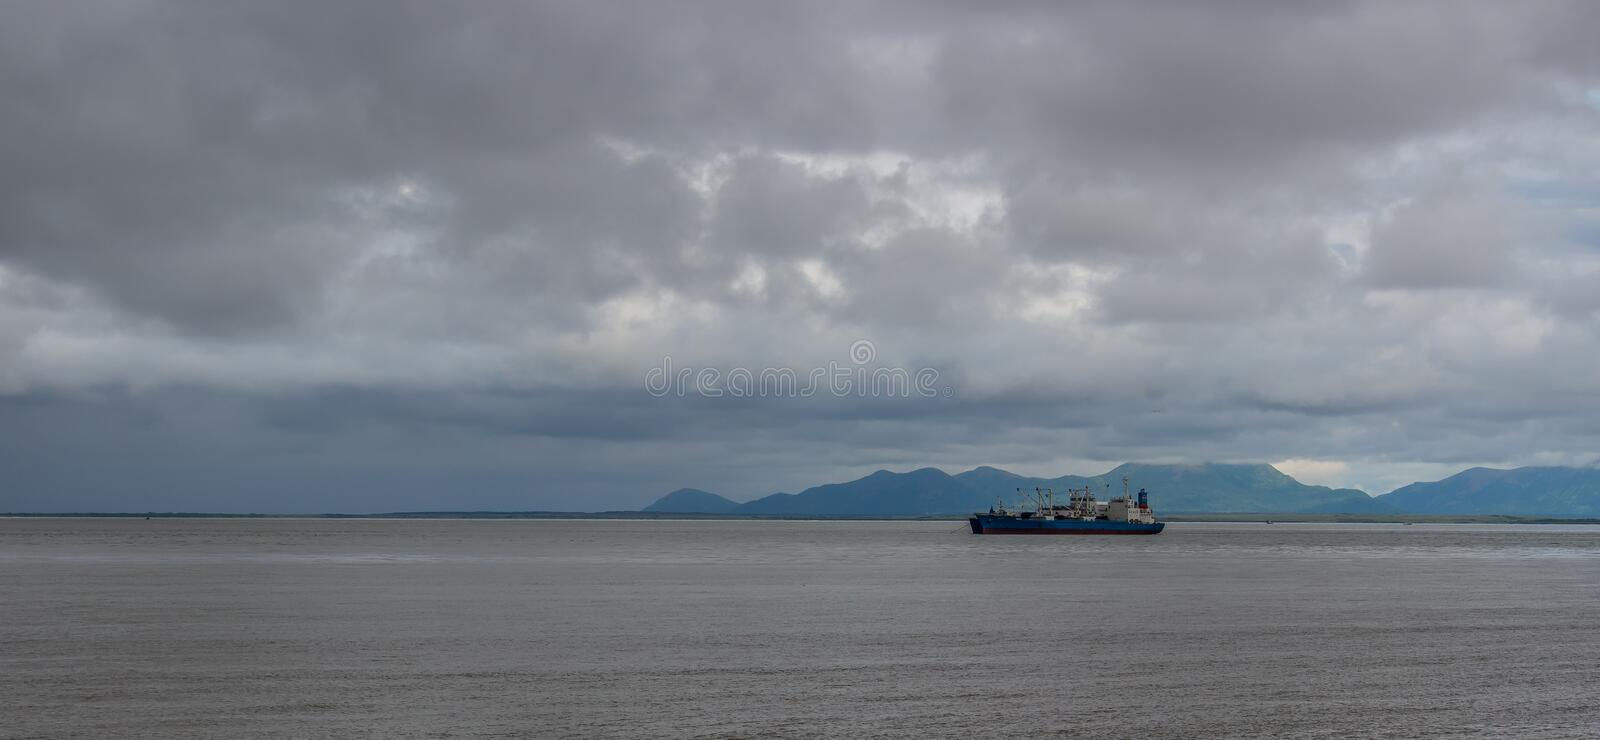 Sunrise on Bristol Bay from Ekuk Alaska. Salmon tender anchored waiting for the start of the season on a cloudy overcast day royalty free stock photos